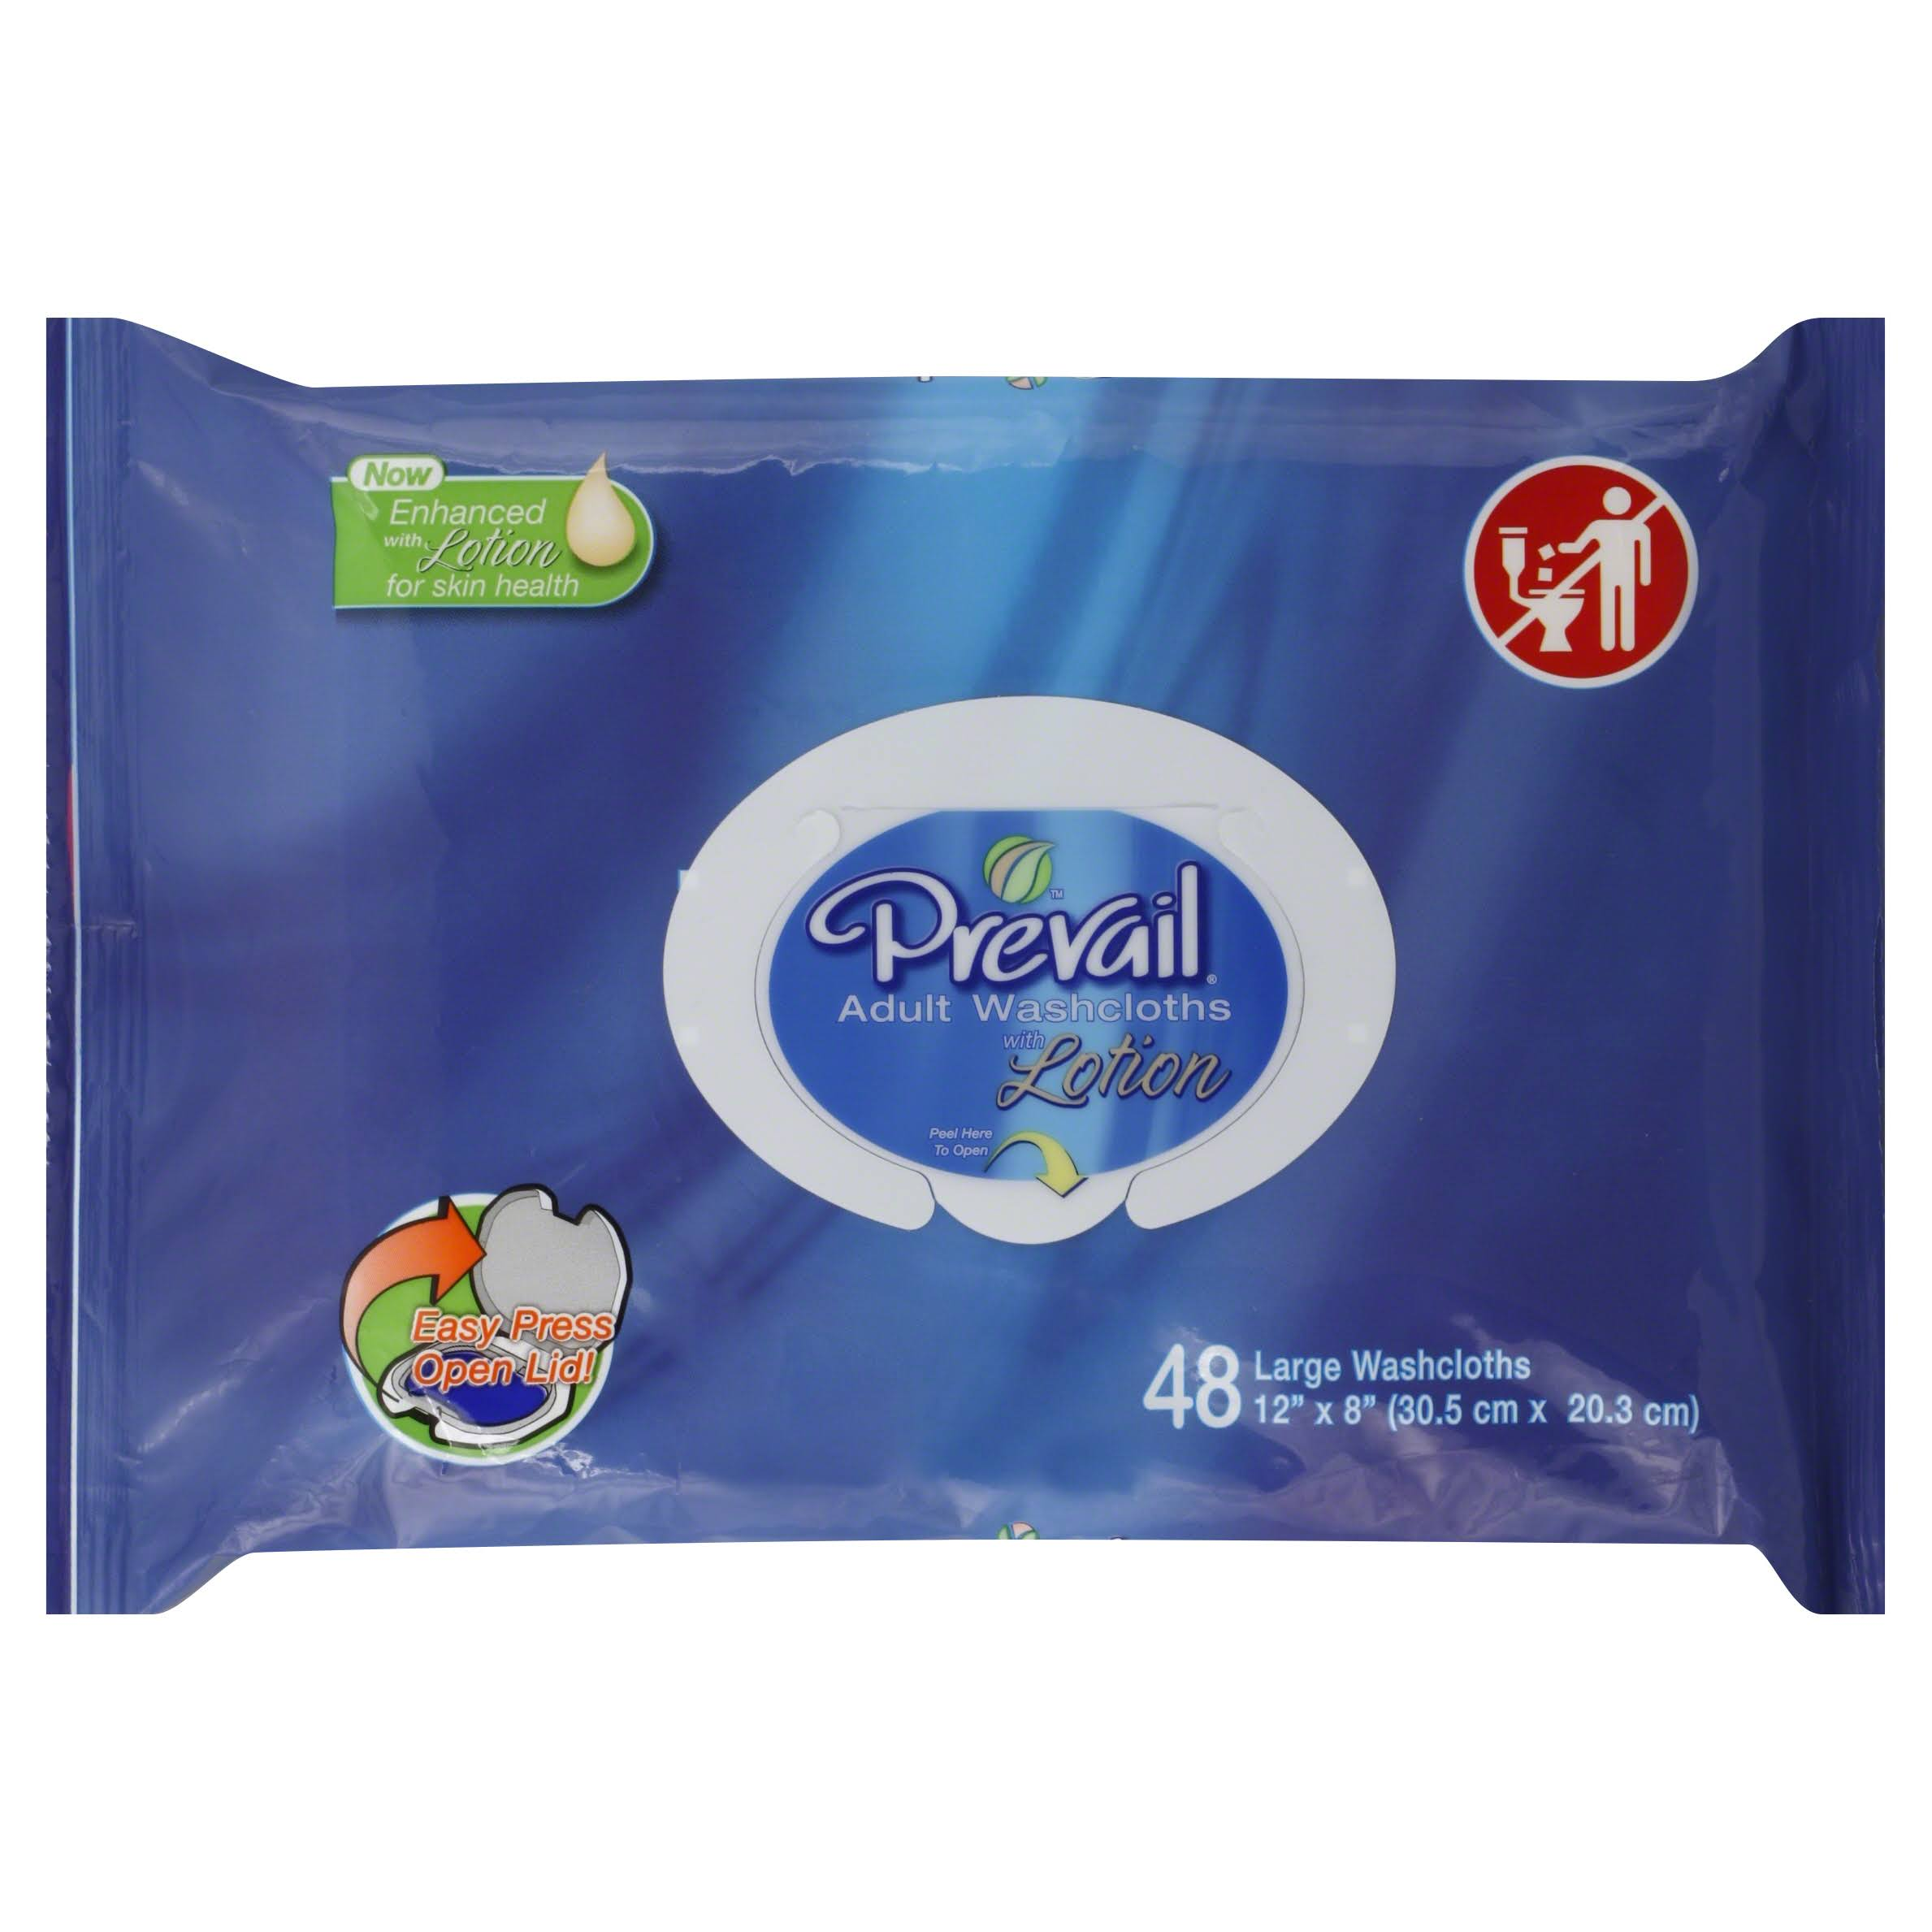 Prevail Adult Washcloth - Soft Pack, 48 Count